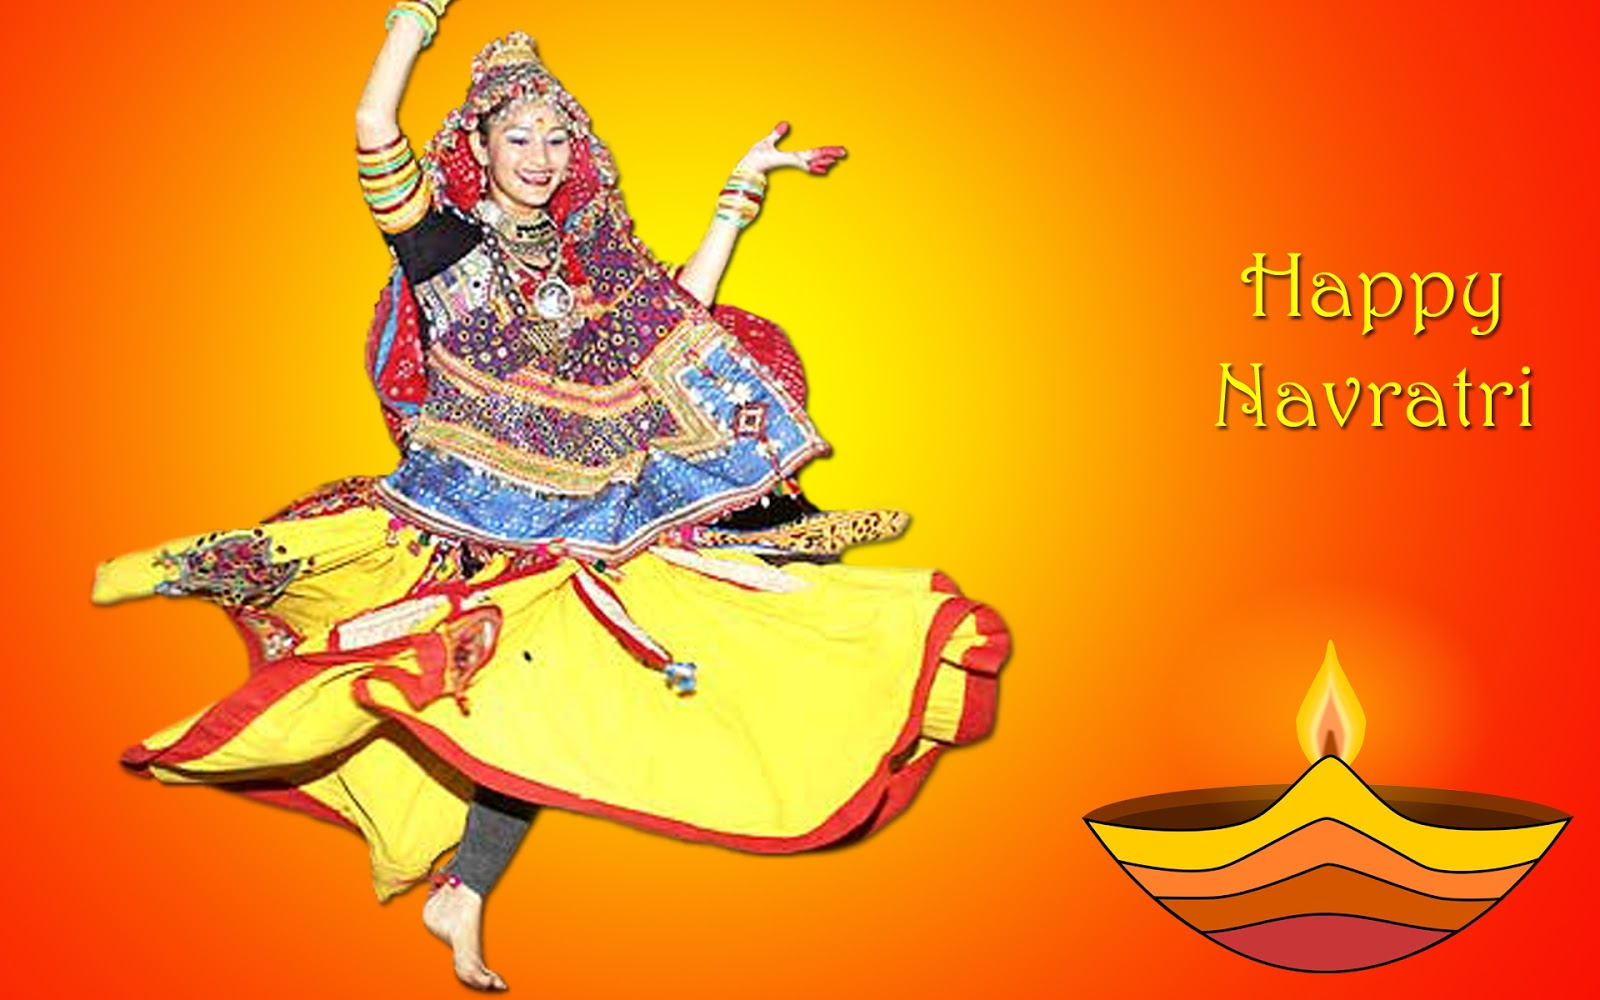 Happy navratri 2016 sms images quotes greetings durga puja 2016 happy2bnavratri2b20162bsms2bimages2bquotes2bgreetings2b kristyandbryce Choice Image